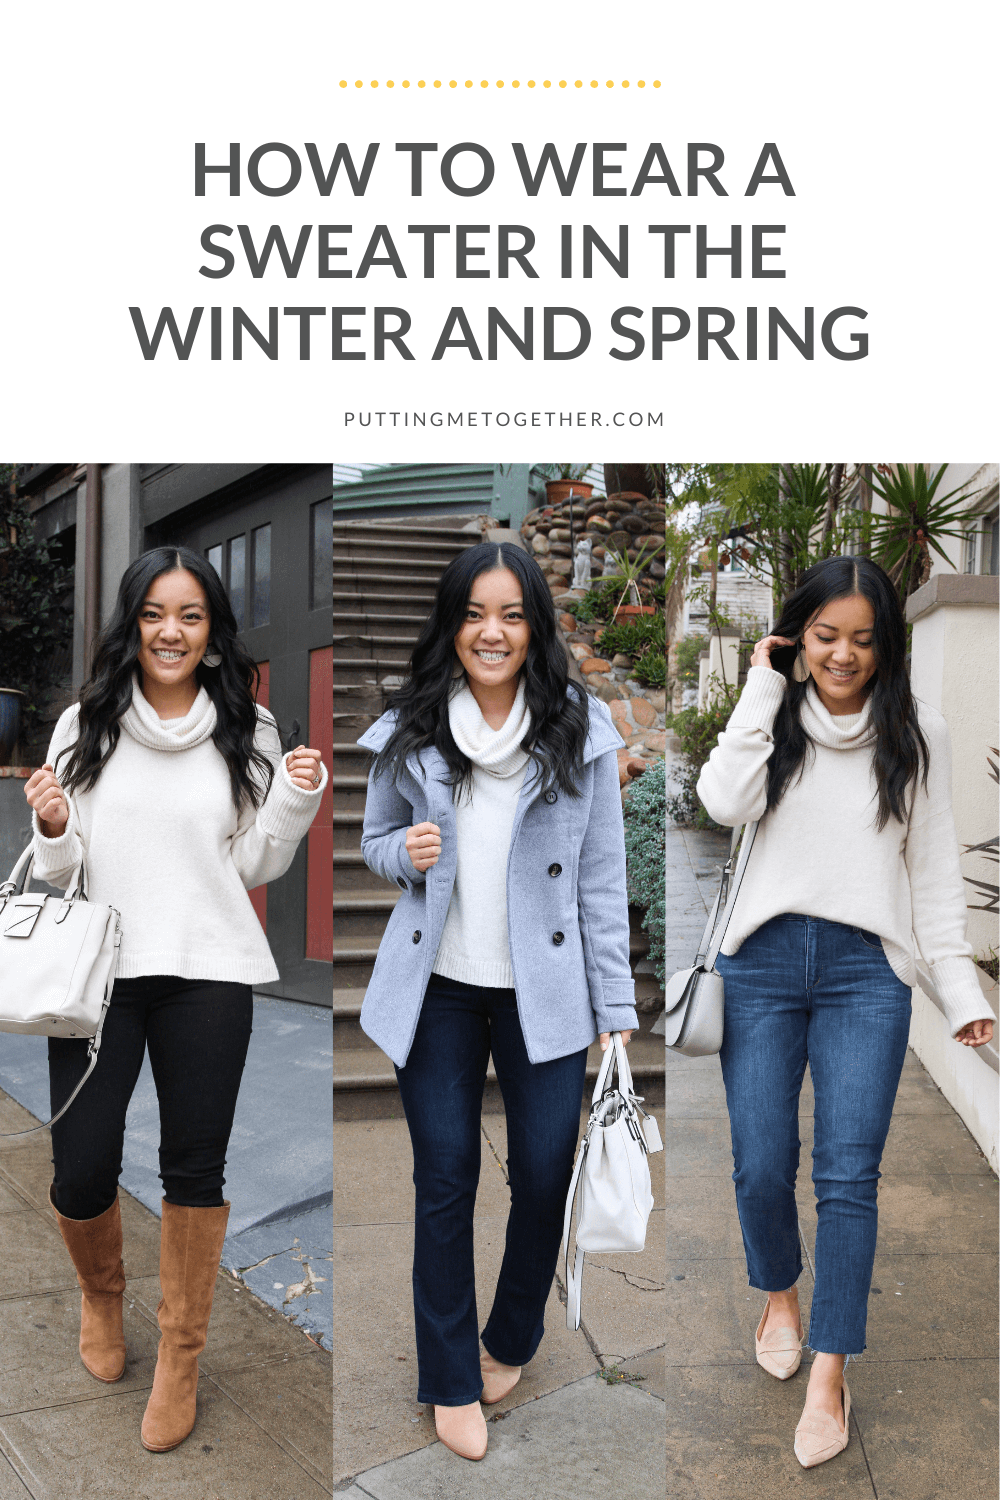 how to wear sweater in winter and spring